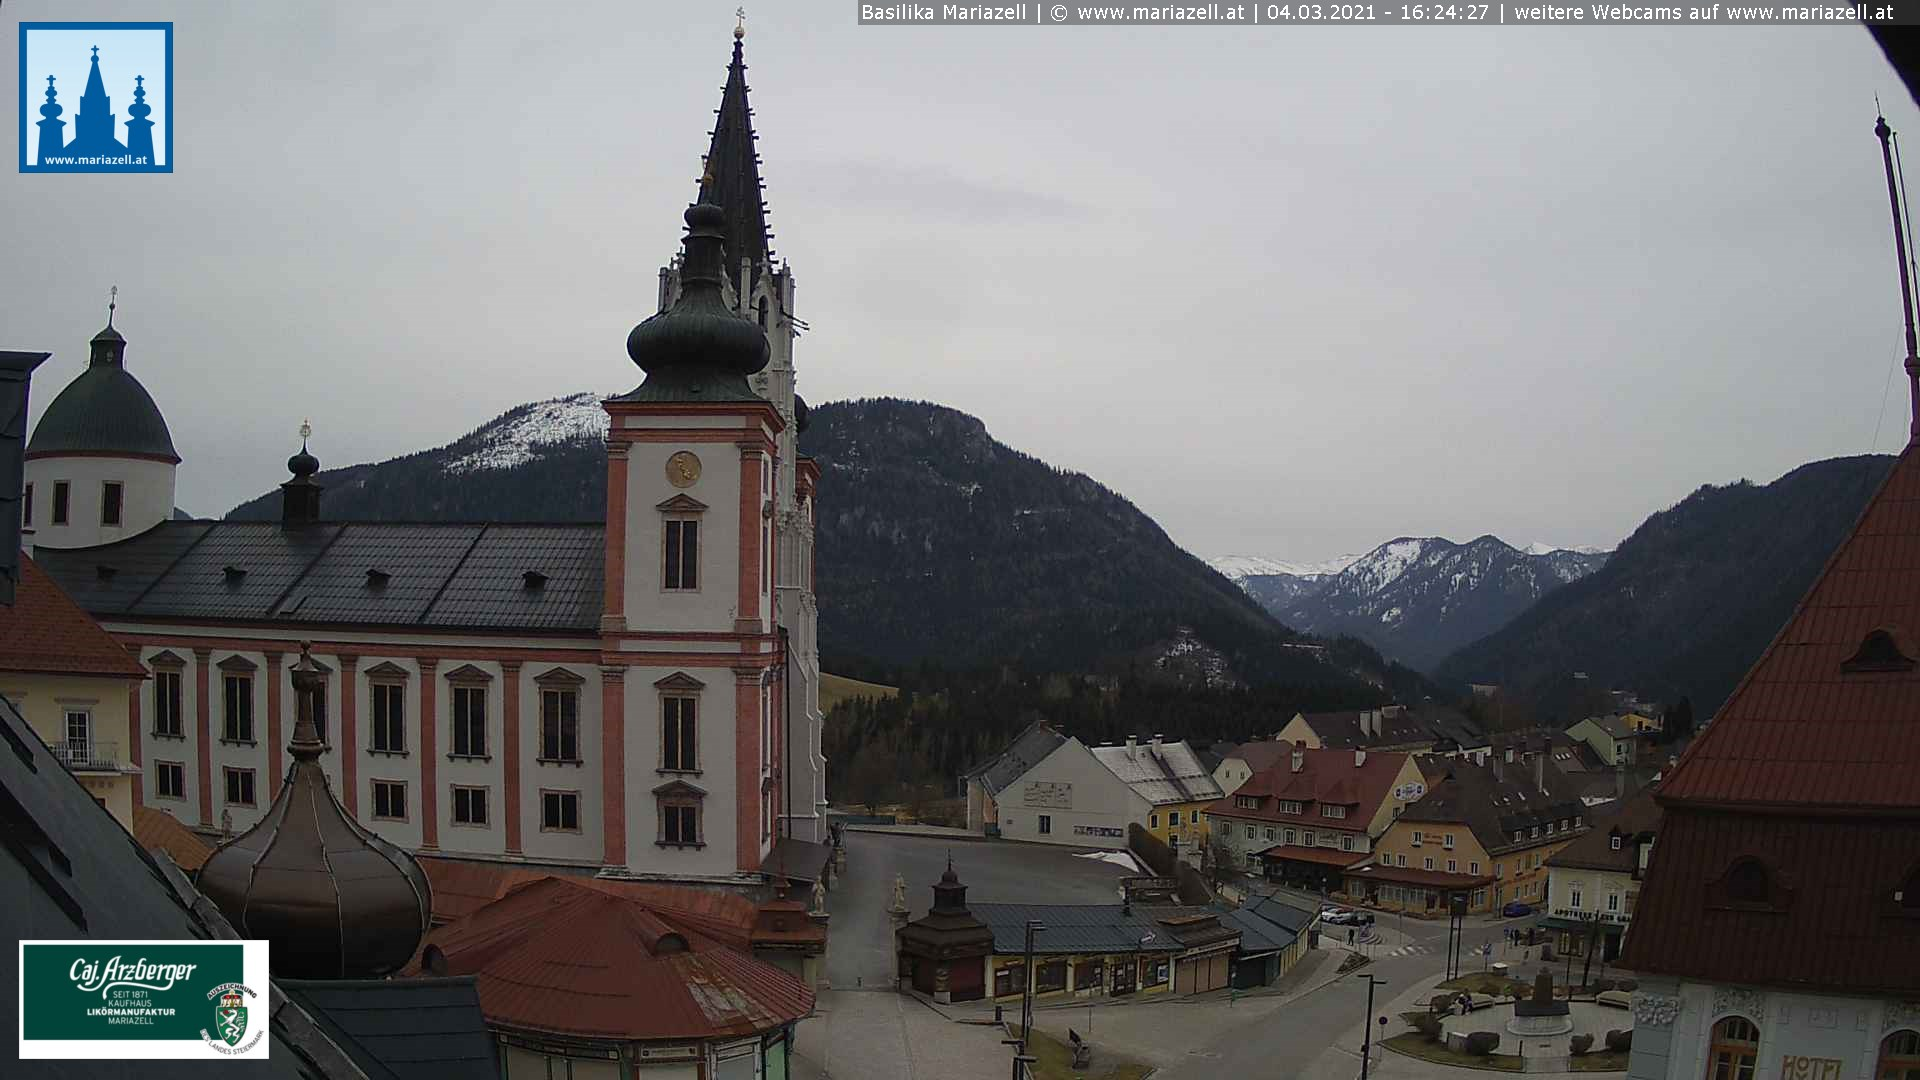 Basilika Mariazell